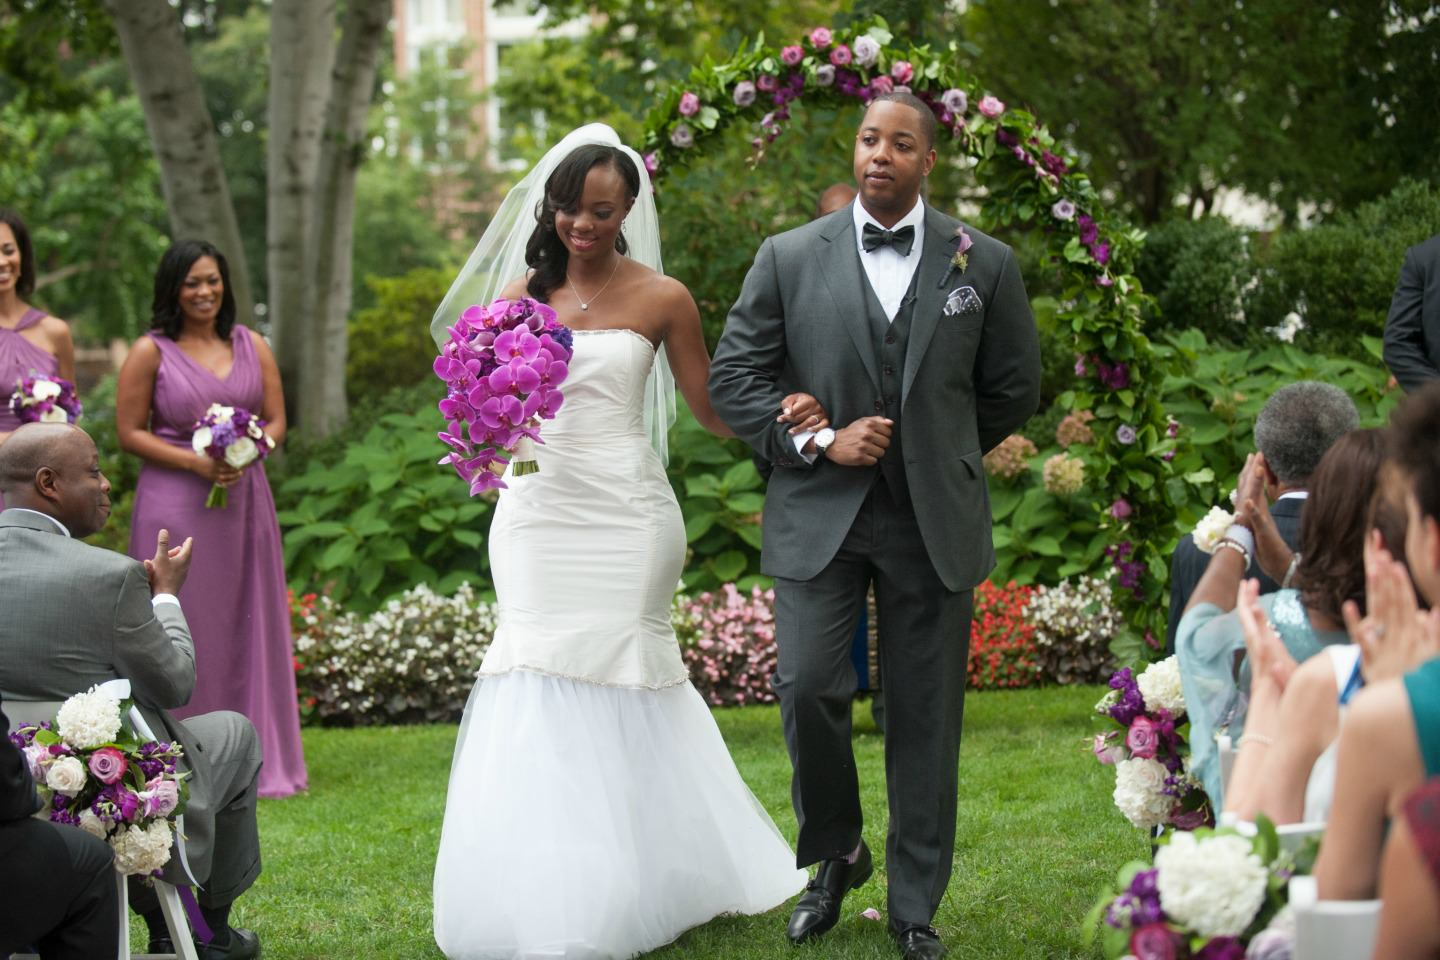 Bride_Groom_Recessional